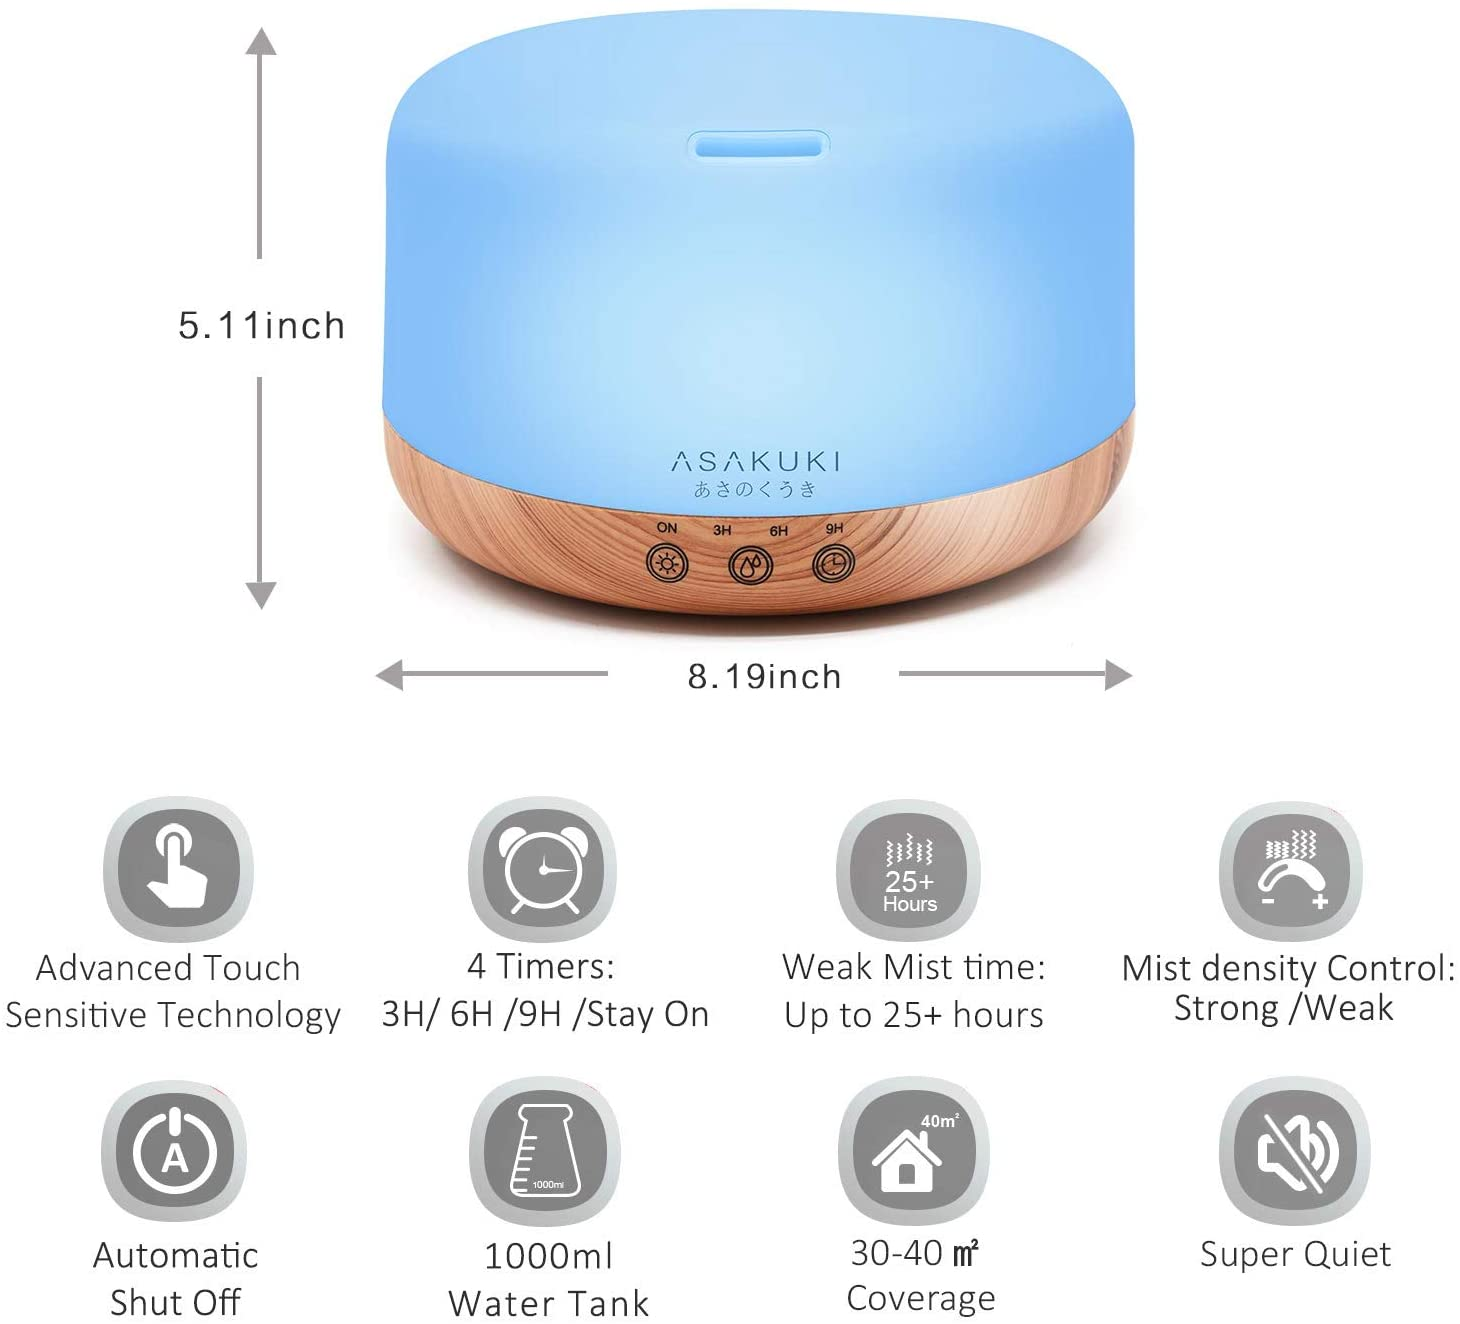 ASAKUKI 1000ml Premium - Essential Oil Diffuser Timer and Auto-Off Safety Switch, 7 LED Light Colors